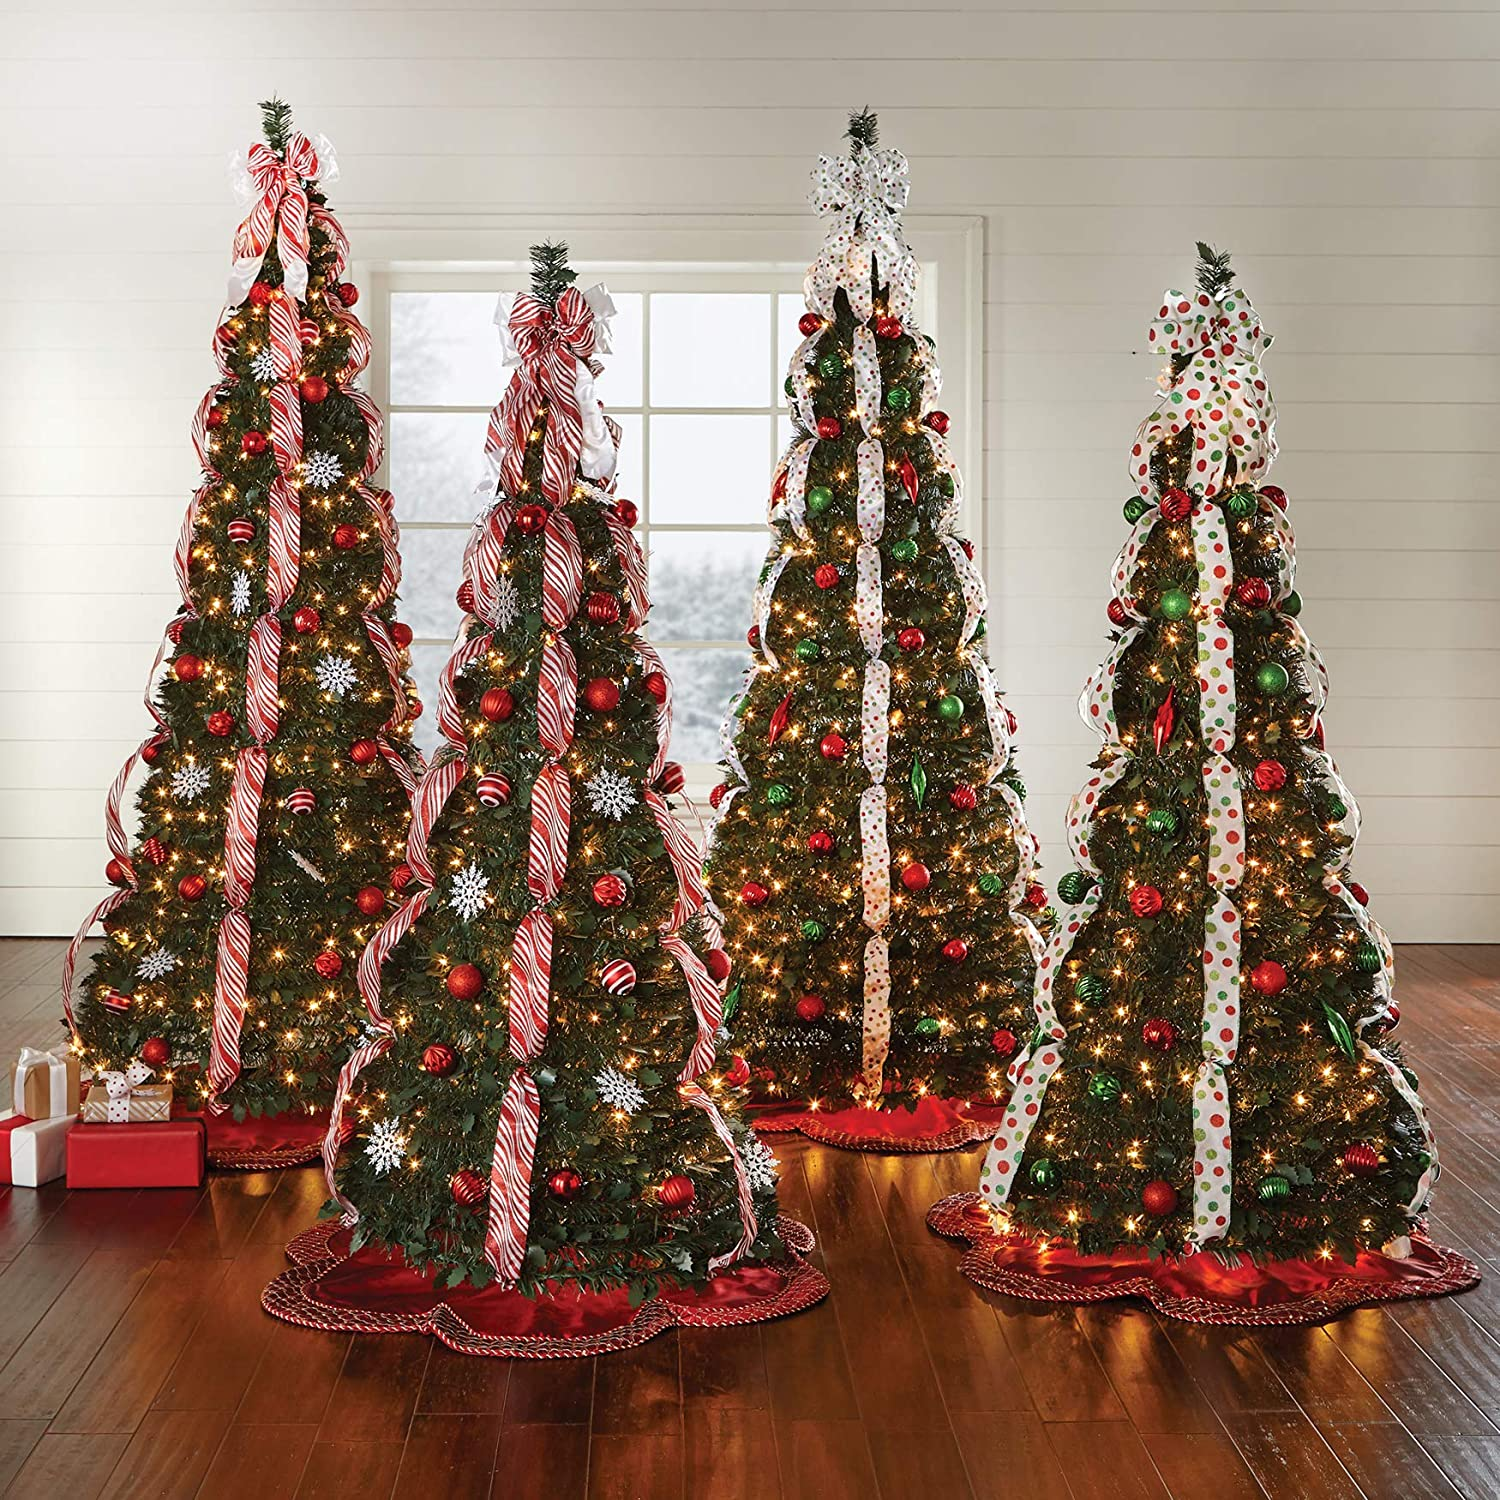 BrylaneHome Christmas Fully Decorated Pre Lit 6 Ft Pop Up Christmas Tree Red Lime